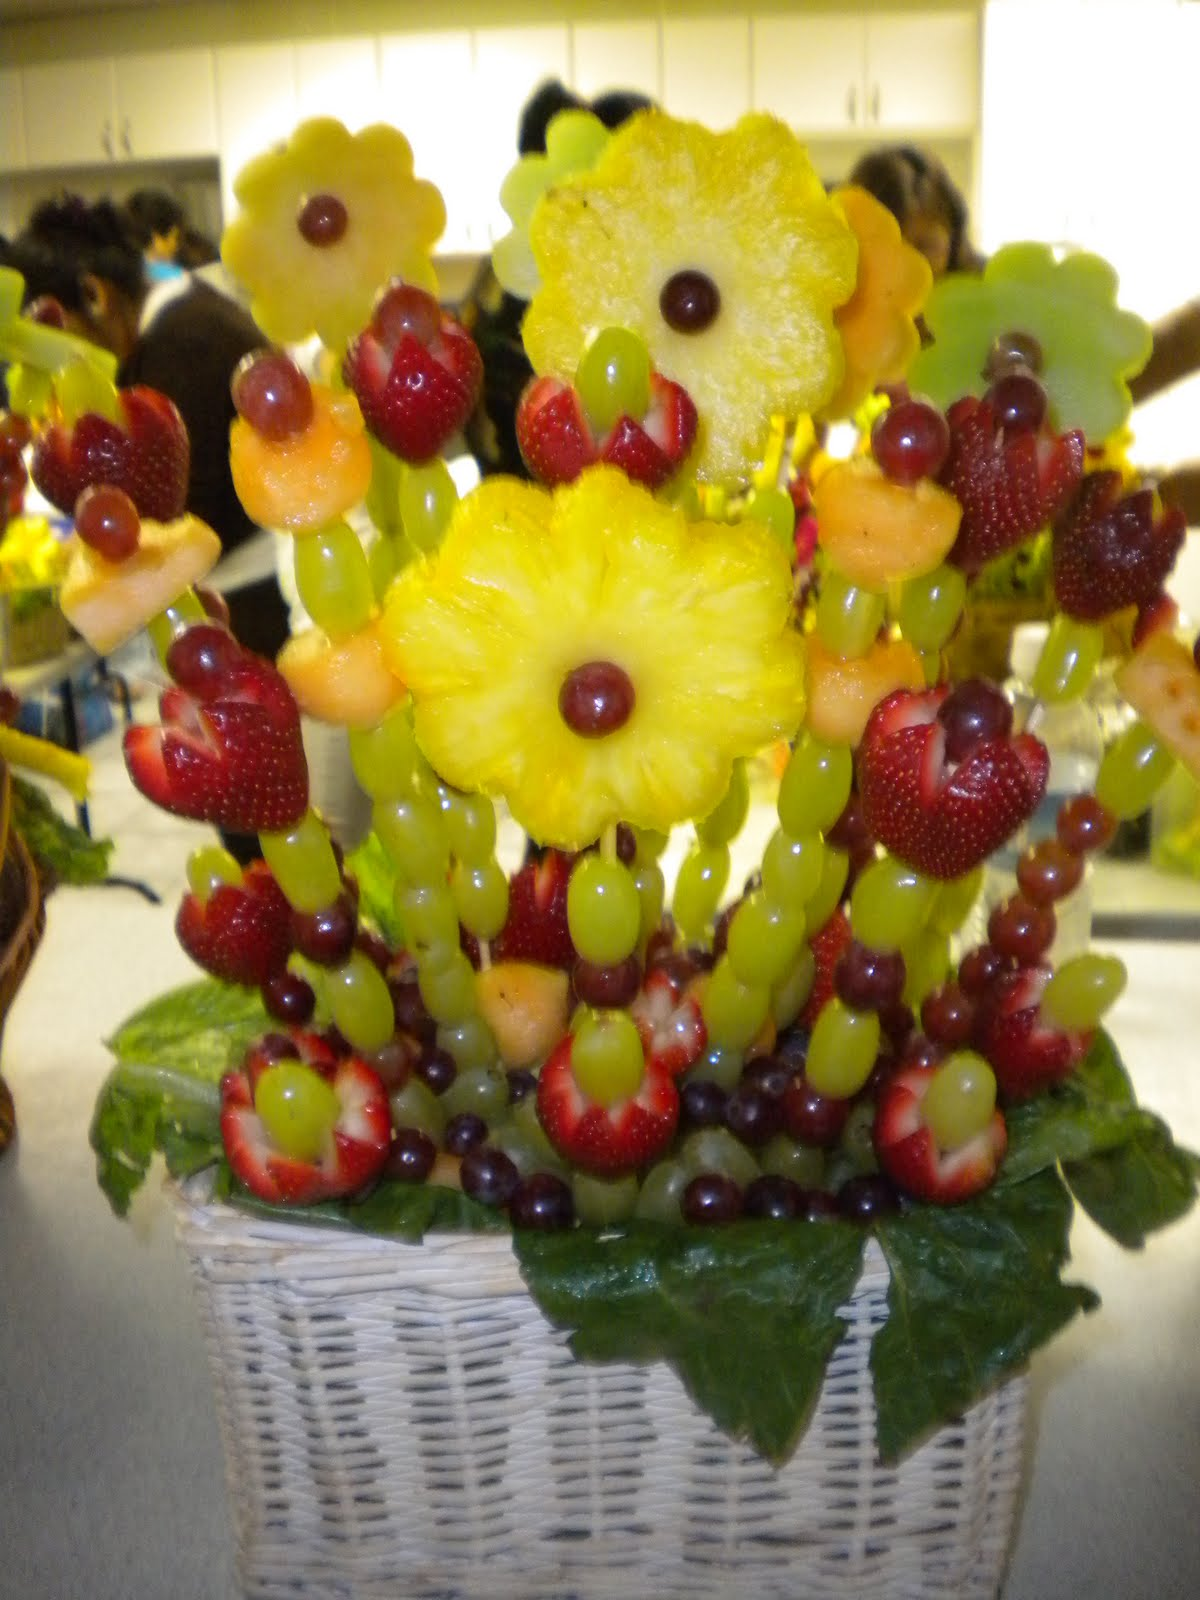 Arreglos De Frutas Para Fiestas http://creatividadeslatinas.blogspot.com/p/fruit-and-vegetables-carving-and-food.html